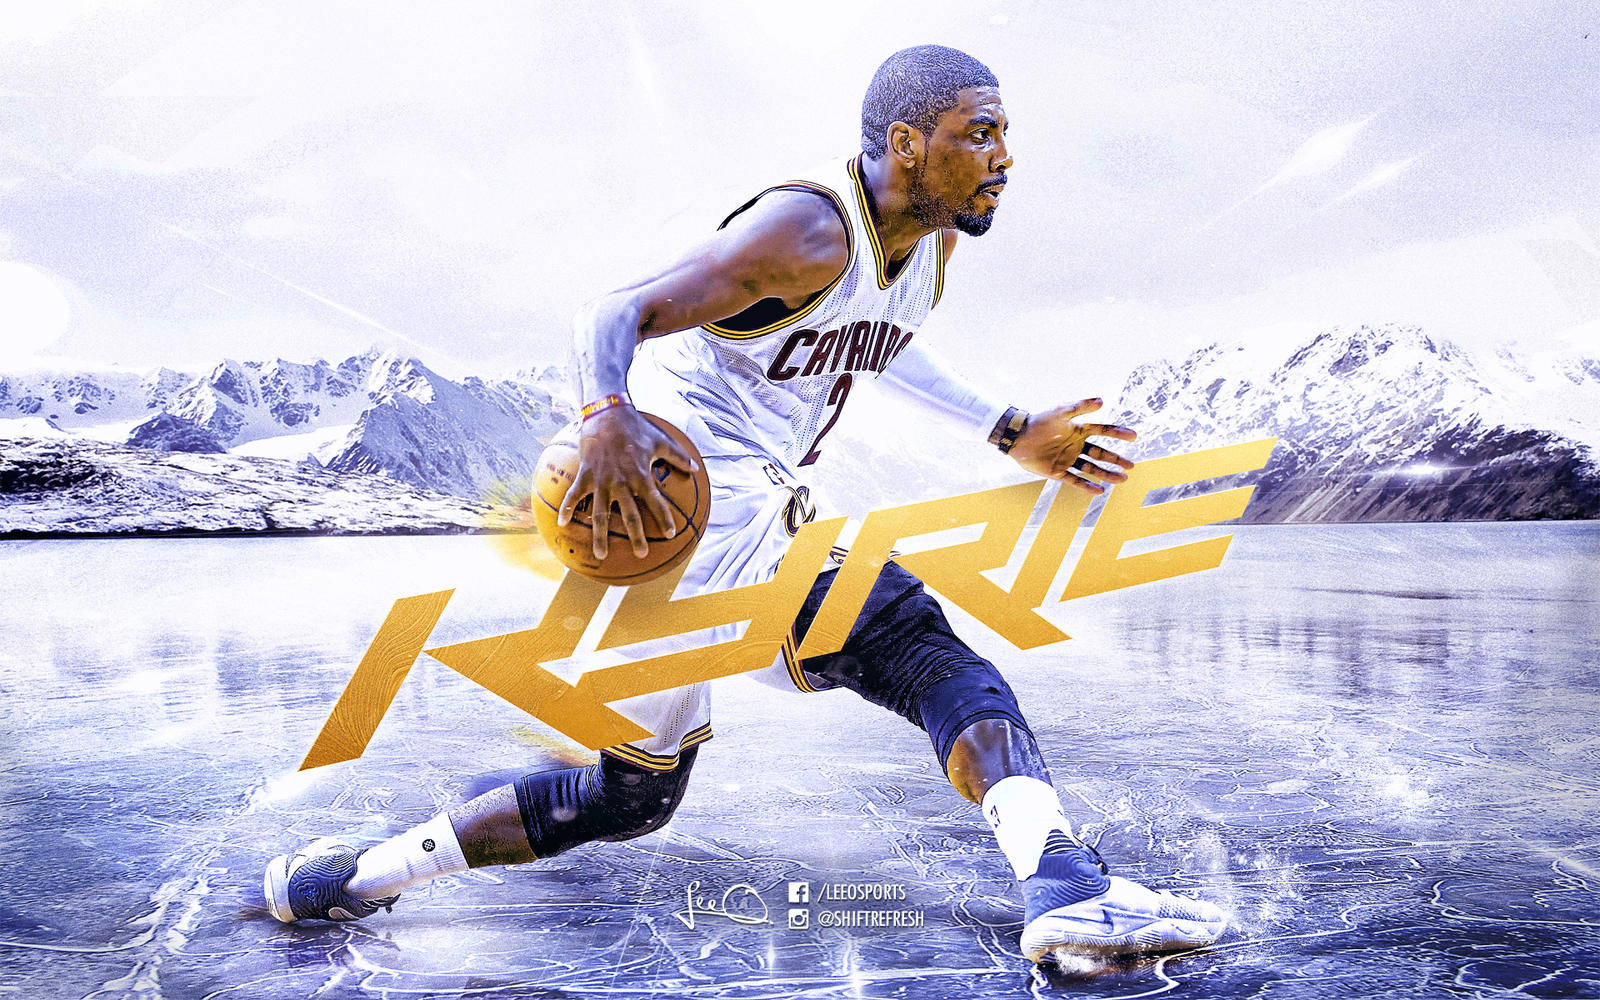 Kyrie Irving NBA Wallpaper 4.0 by skythlee on DeviantArt